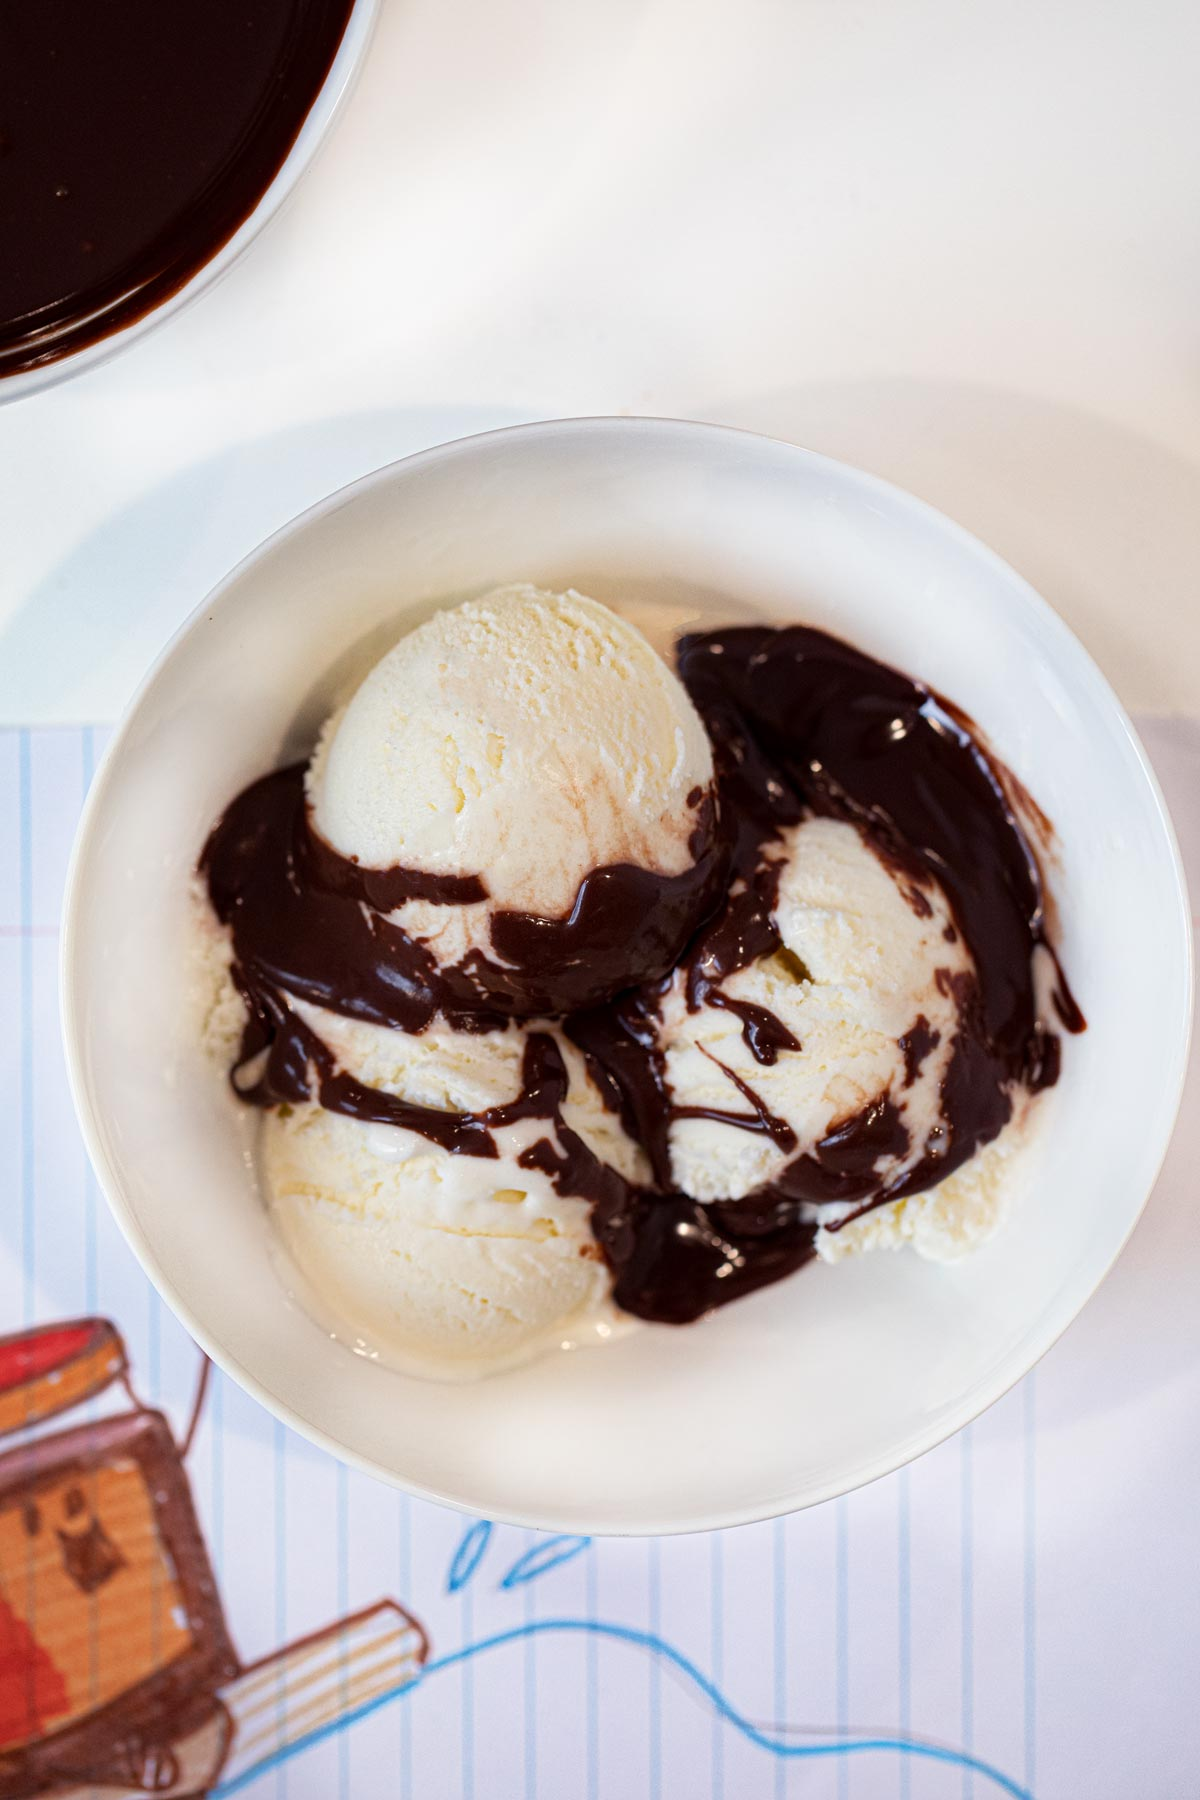 Microwave Chocolate Sauce on ice cream in bowl